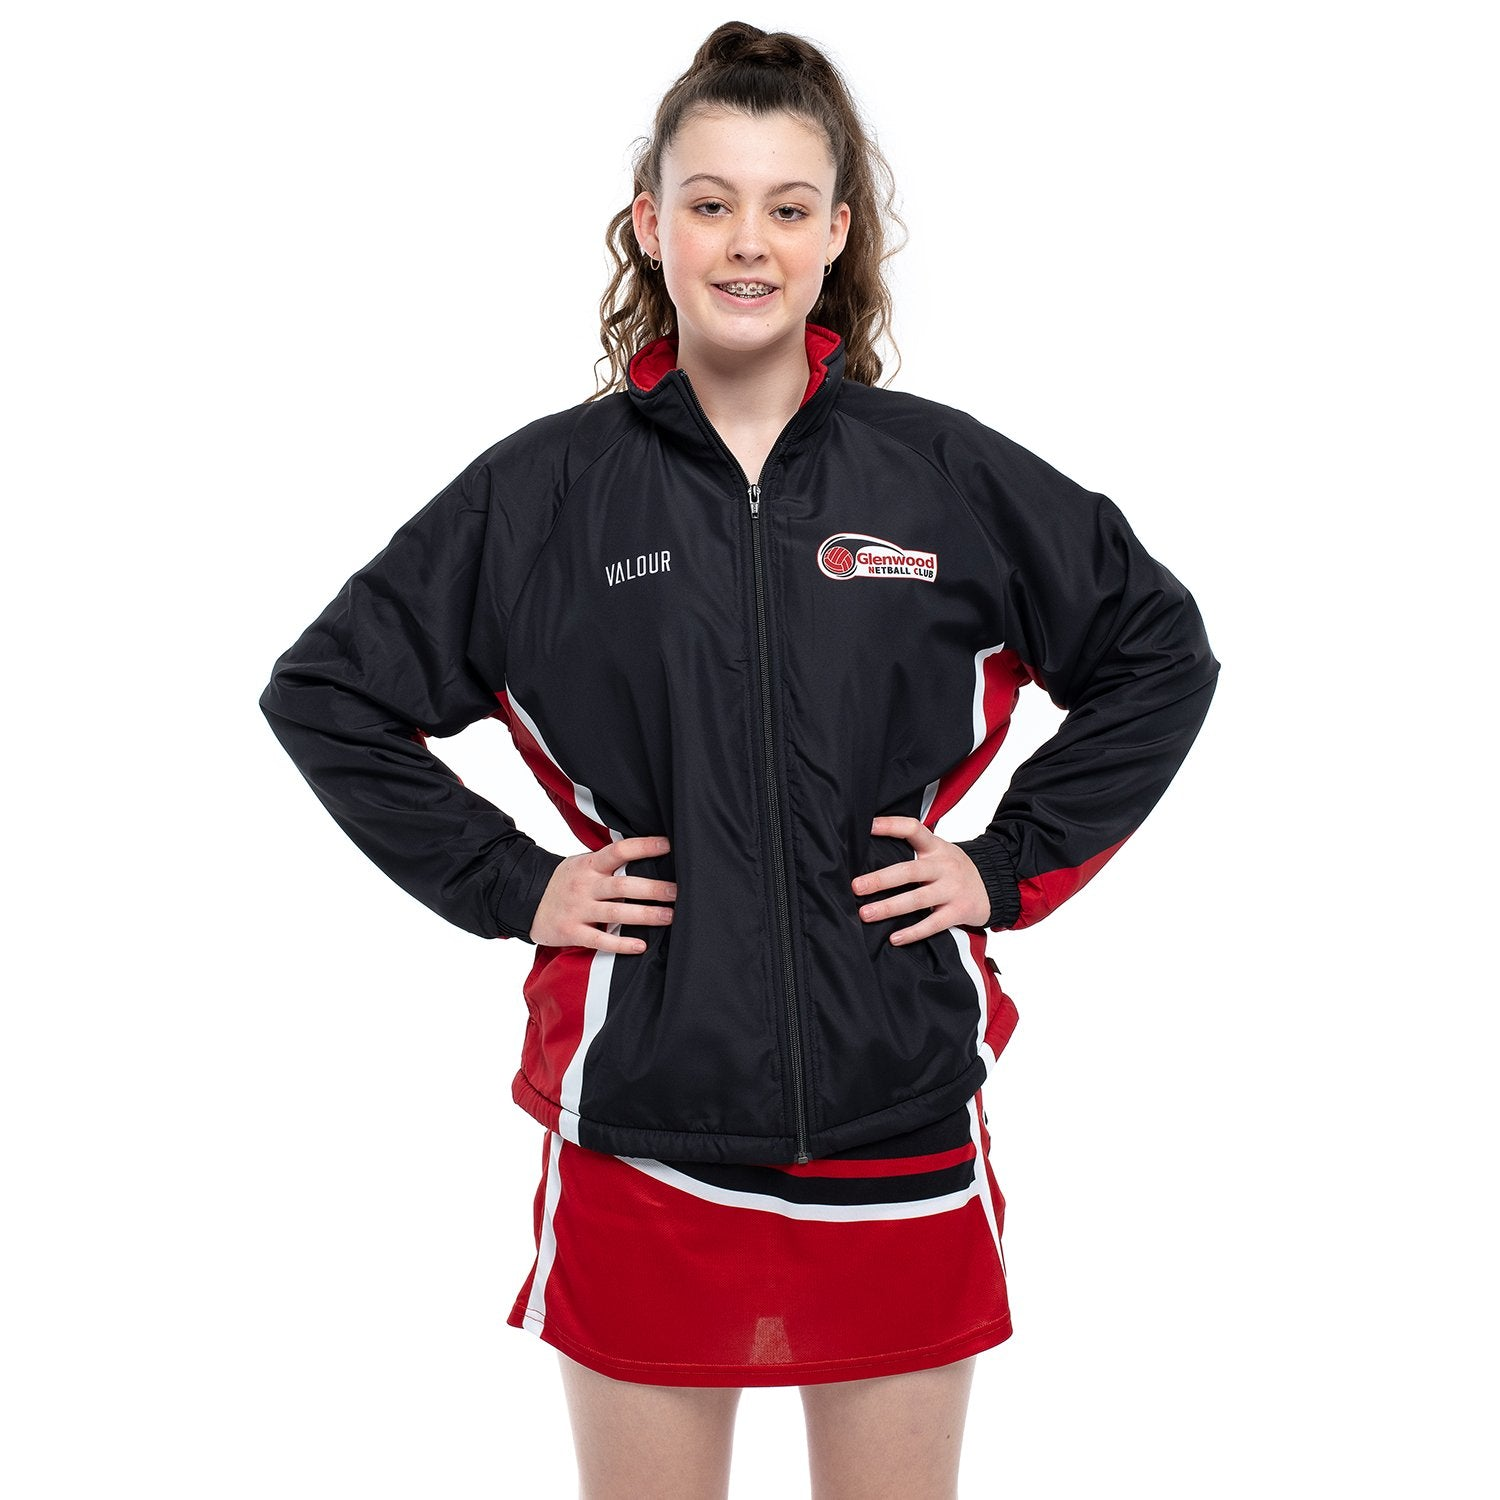 GLENWOOD NETBALL CLUB PLAYERS JACKET